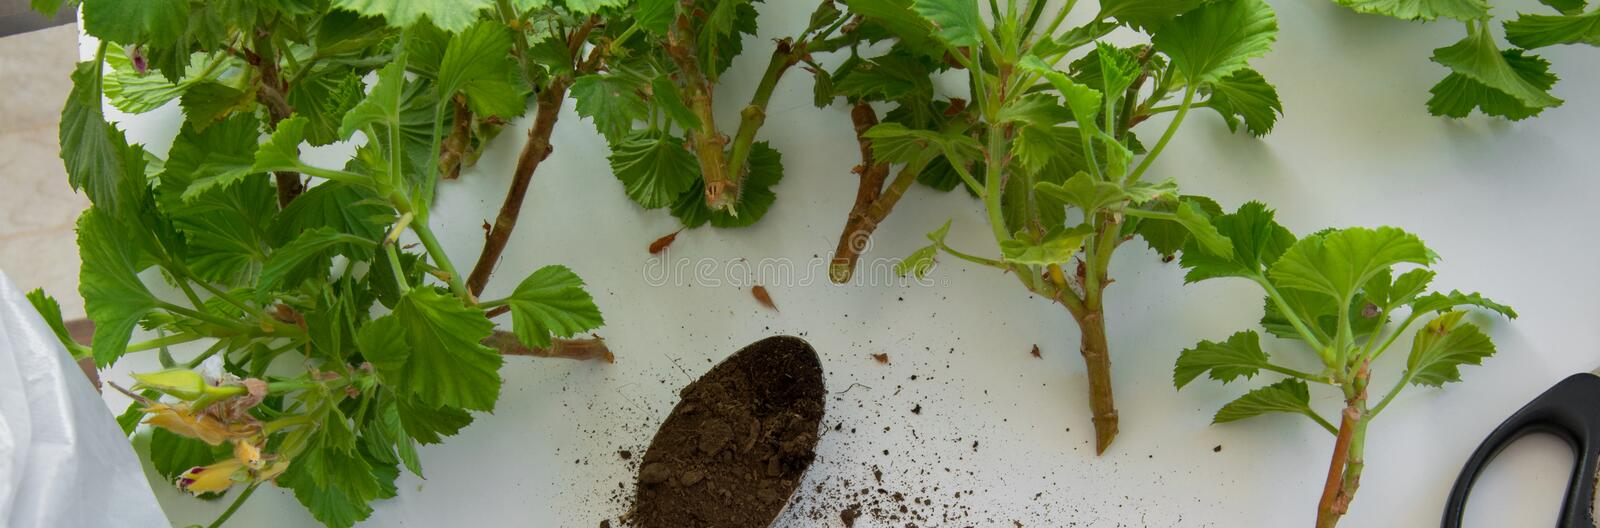 Rooting cuttings from Geranium plants in the plastic cups. DIY gardening stock photo